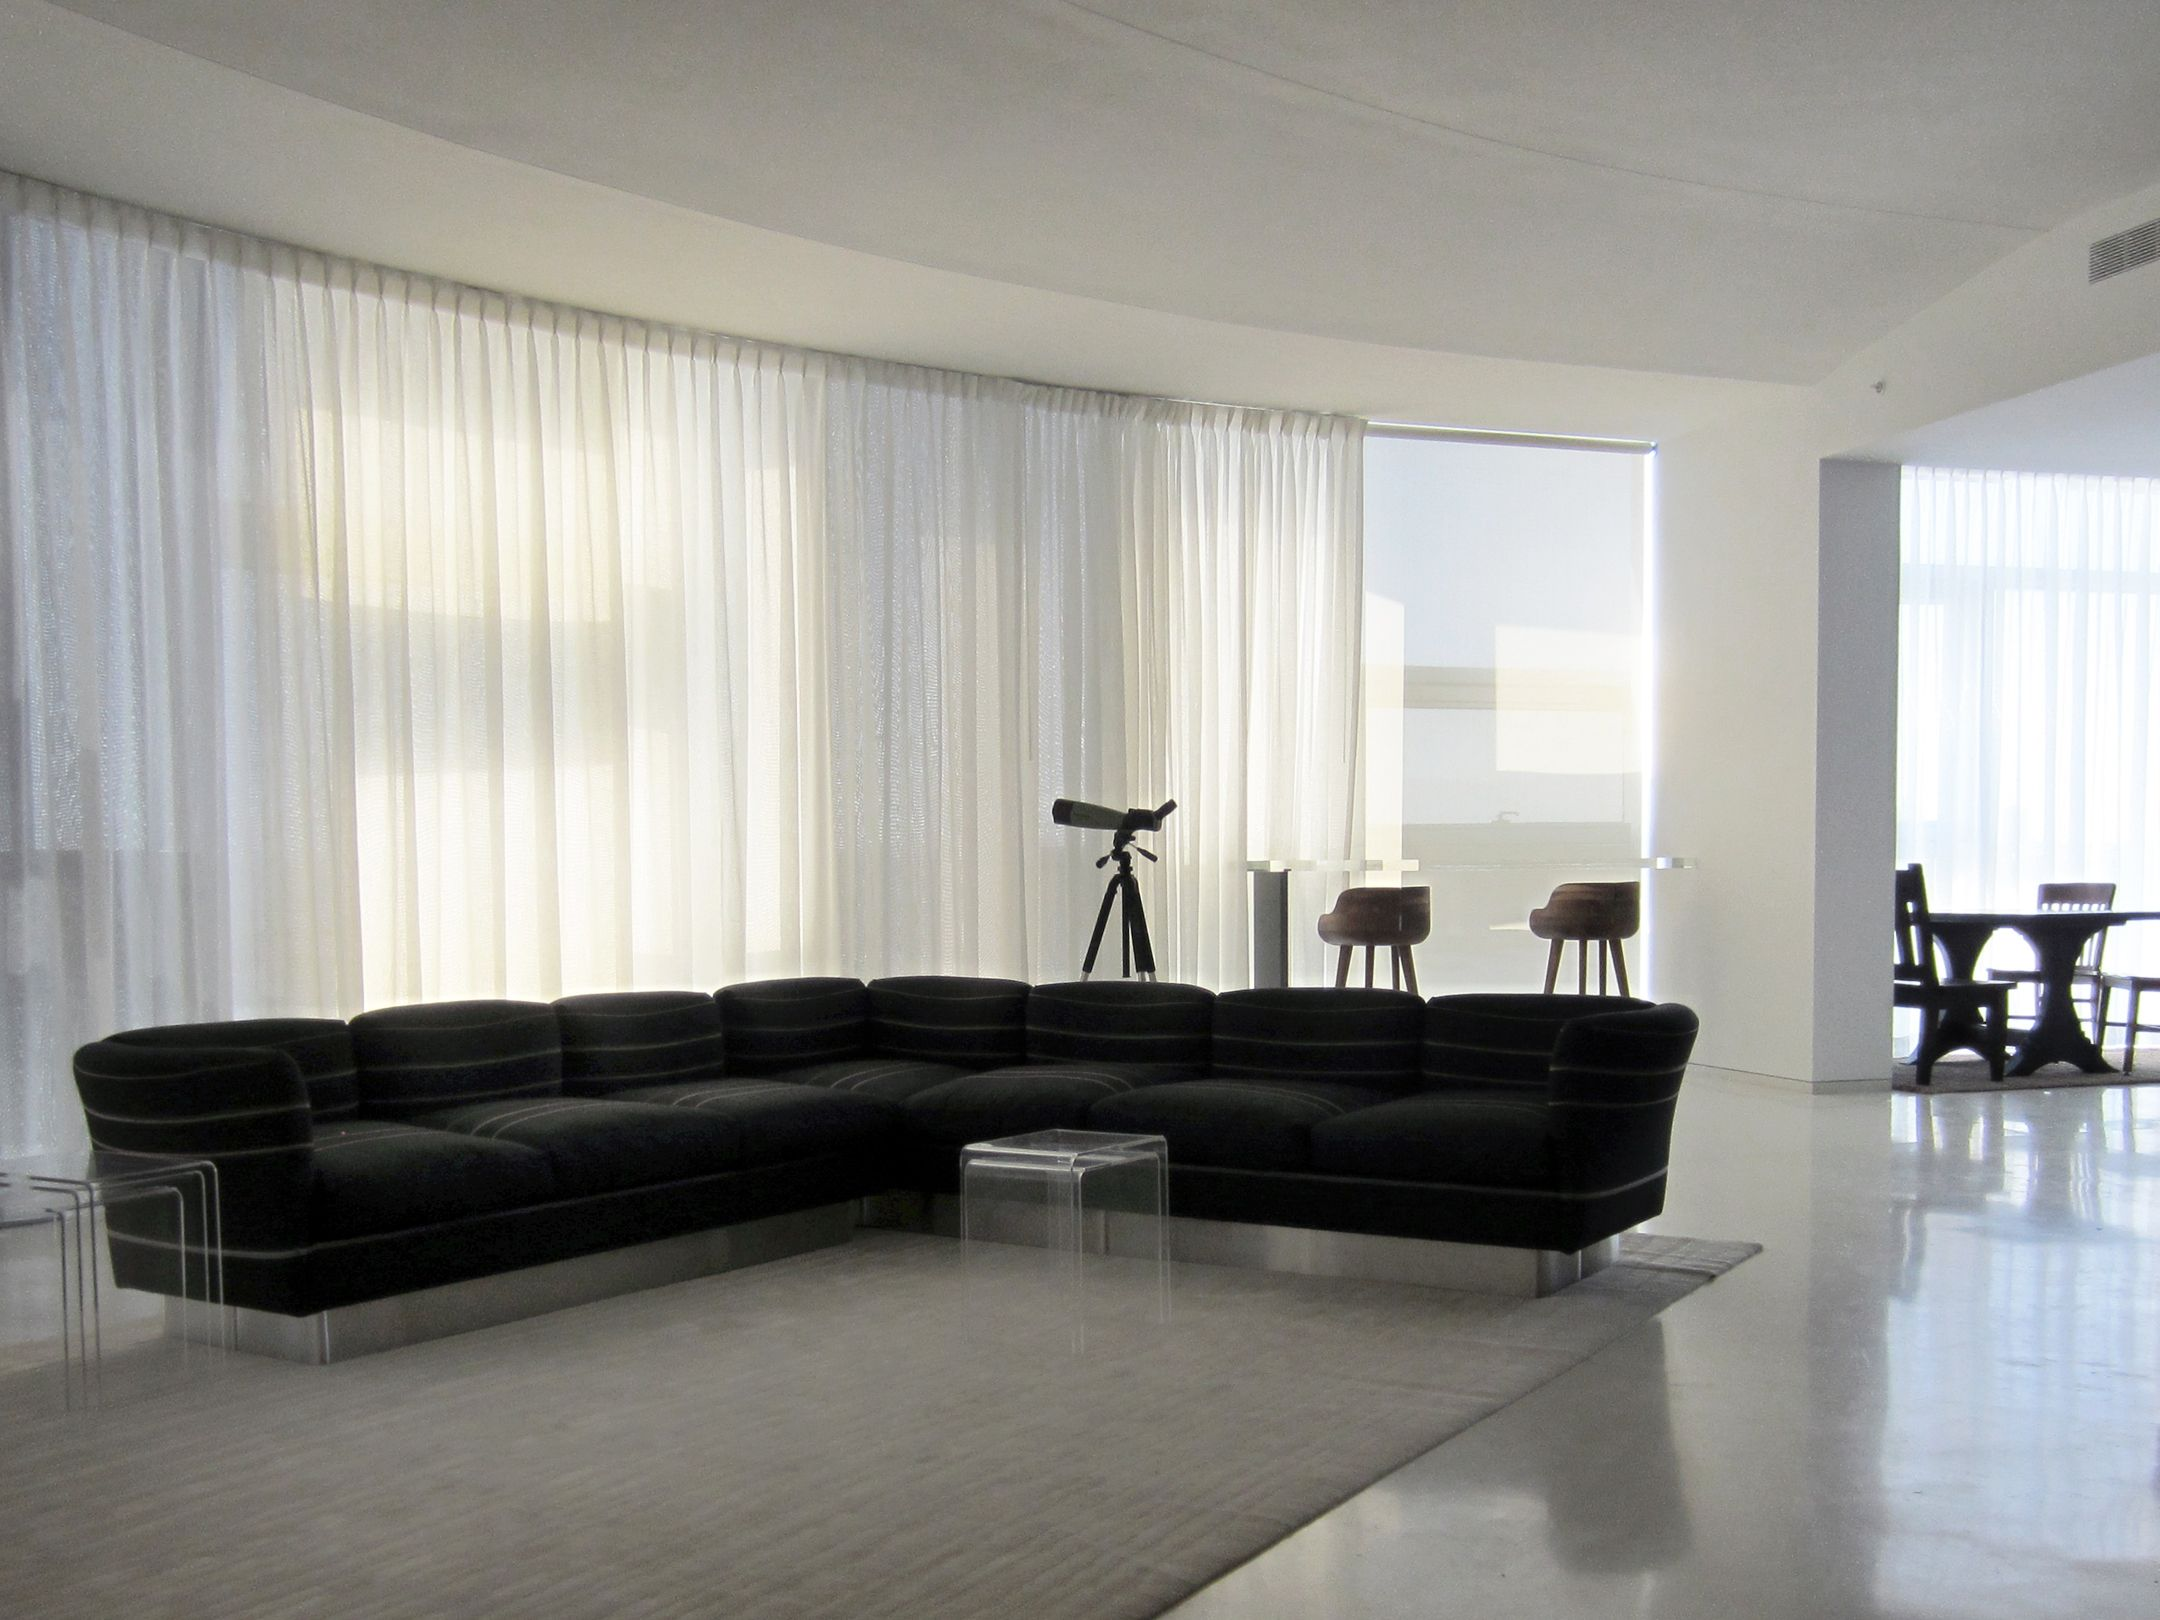 Wall Drapes Motorized Sheer Pinch Pleat Curtain Installed On A Curved